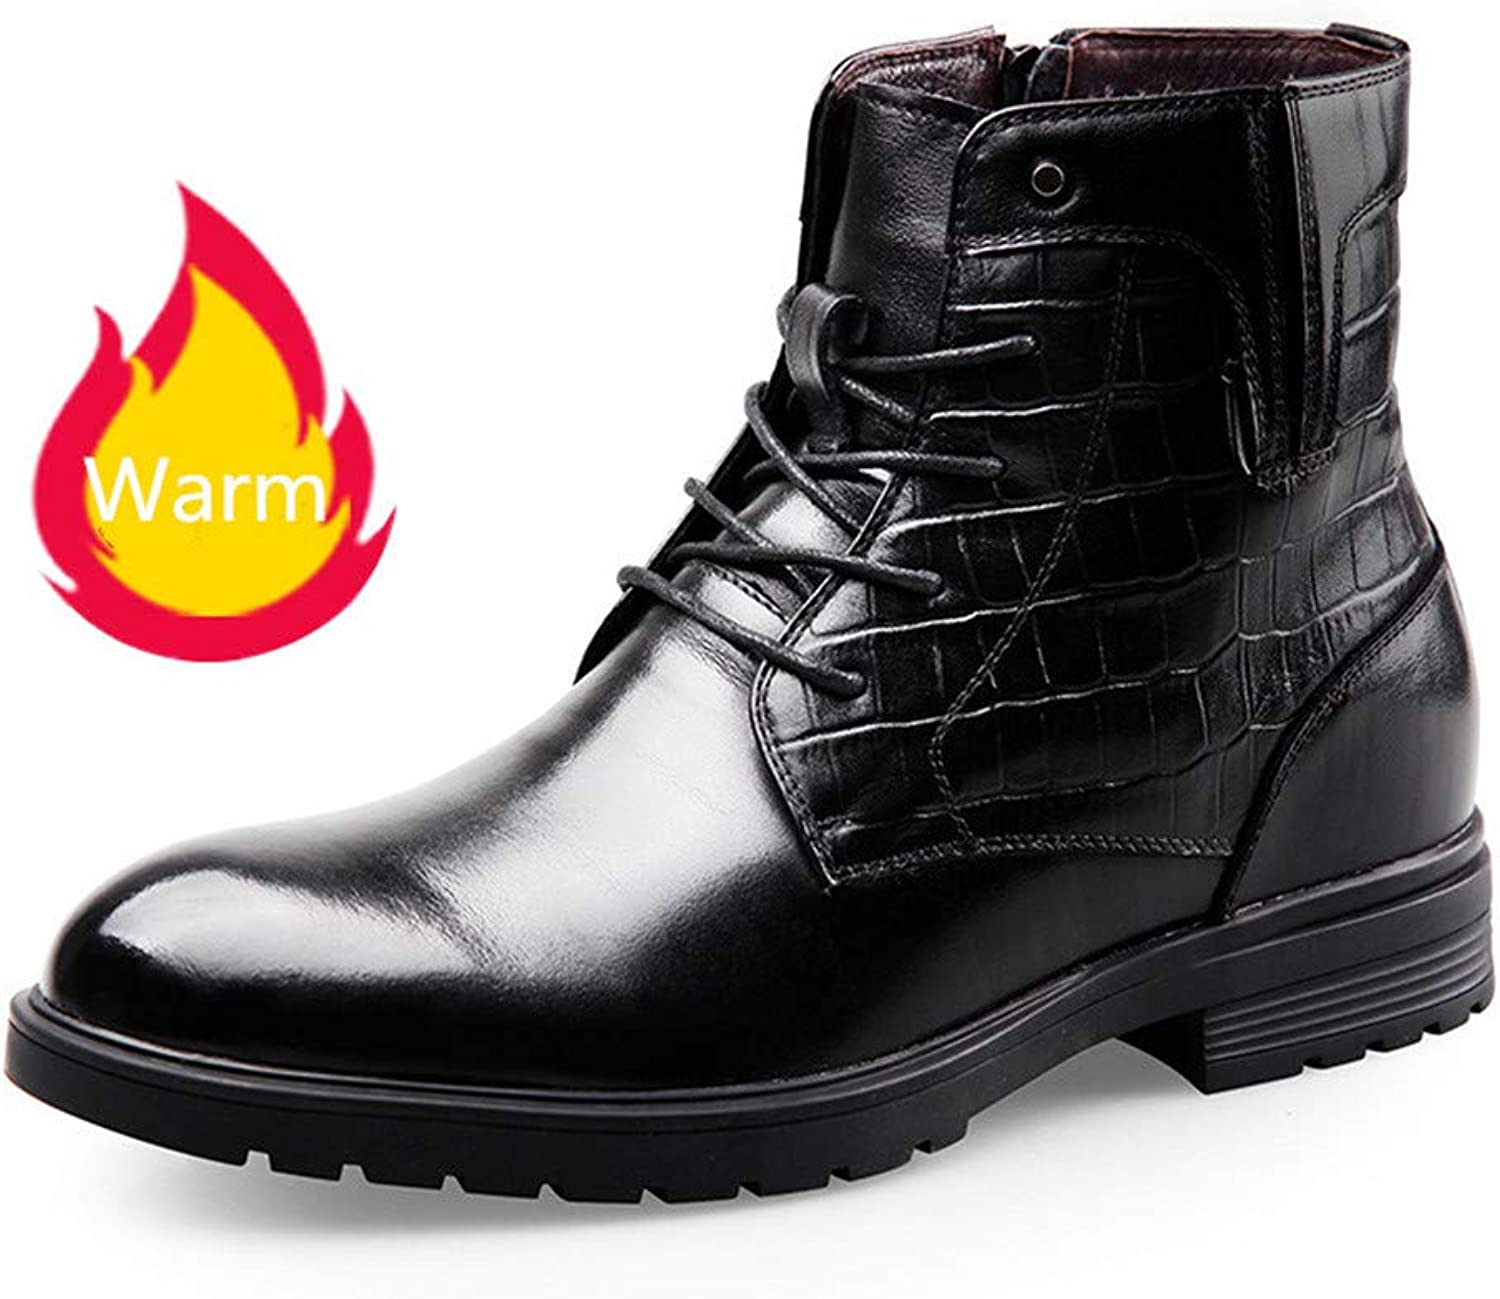 GOG Winter Short Plush Warm Martin Boots Height Increasing 6.5 cm Elevator Boot for Men Black